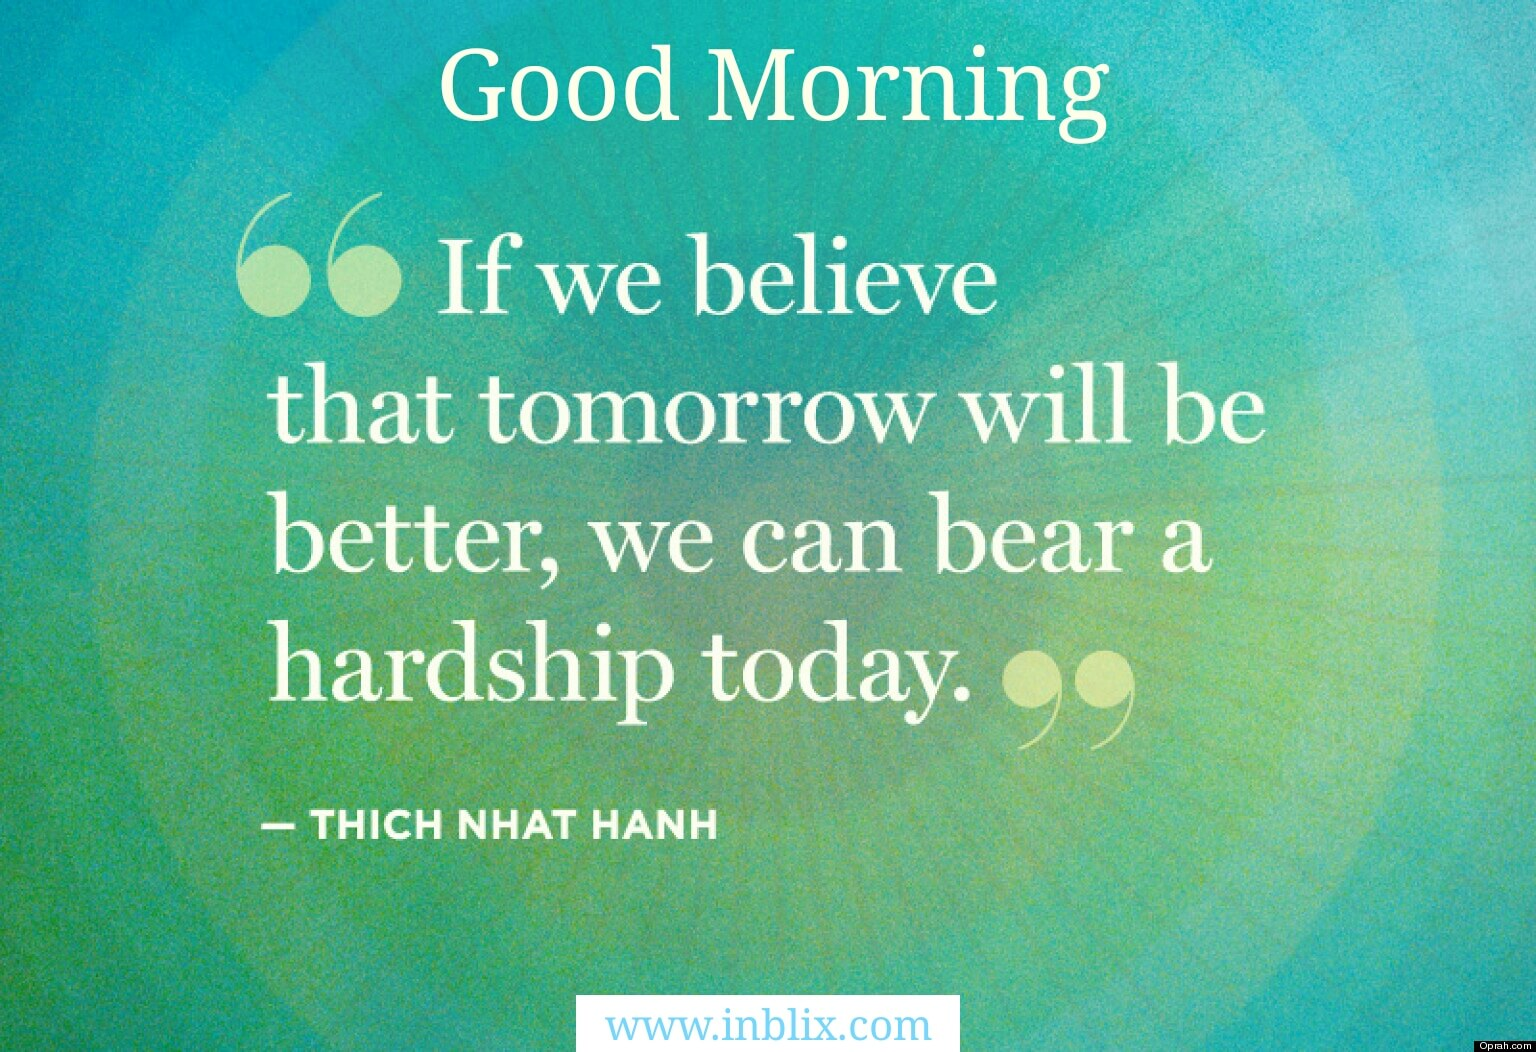 If we believe that tomorrow will be better, we can bear hardship today.